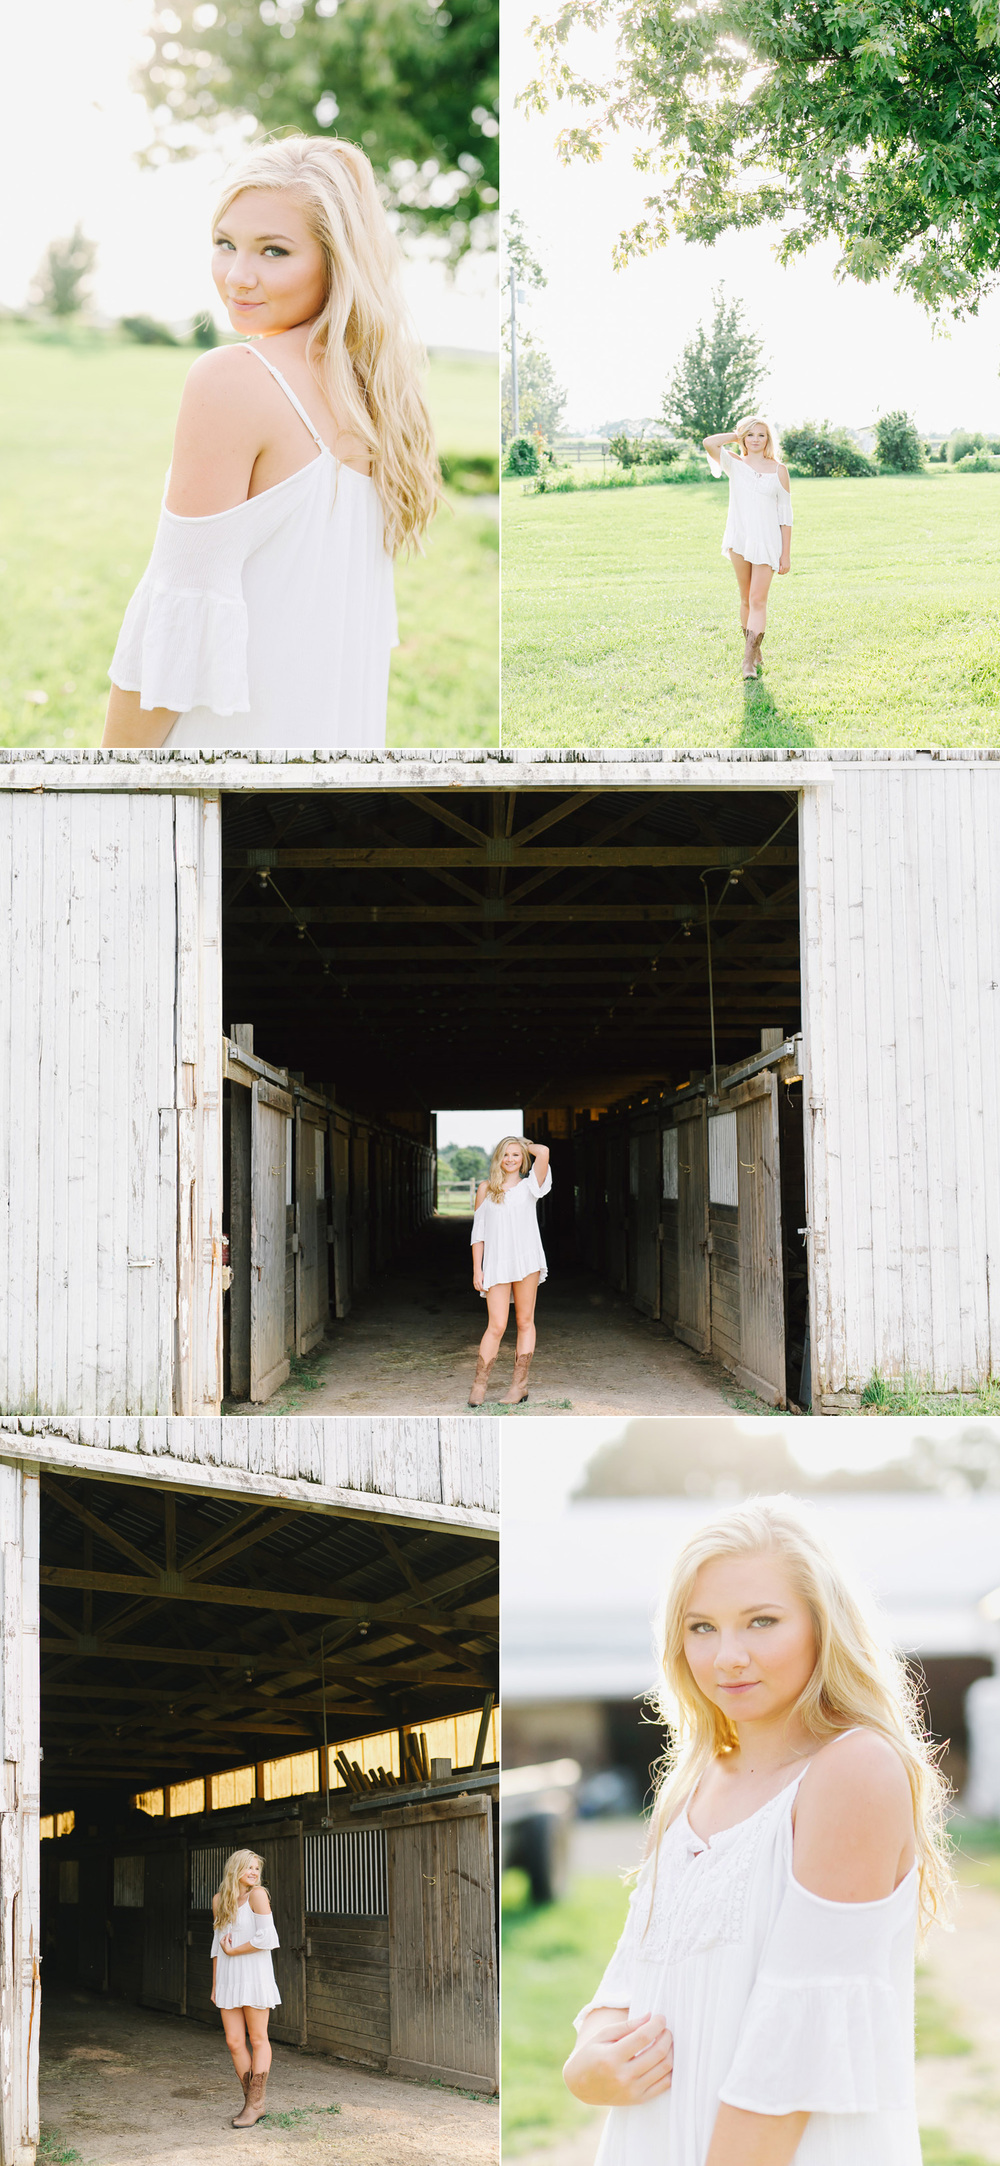 Lux-Senior-Photography-Country-Session2.jpg